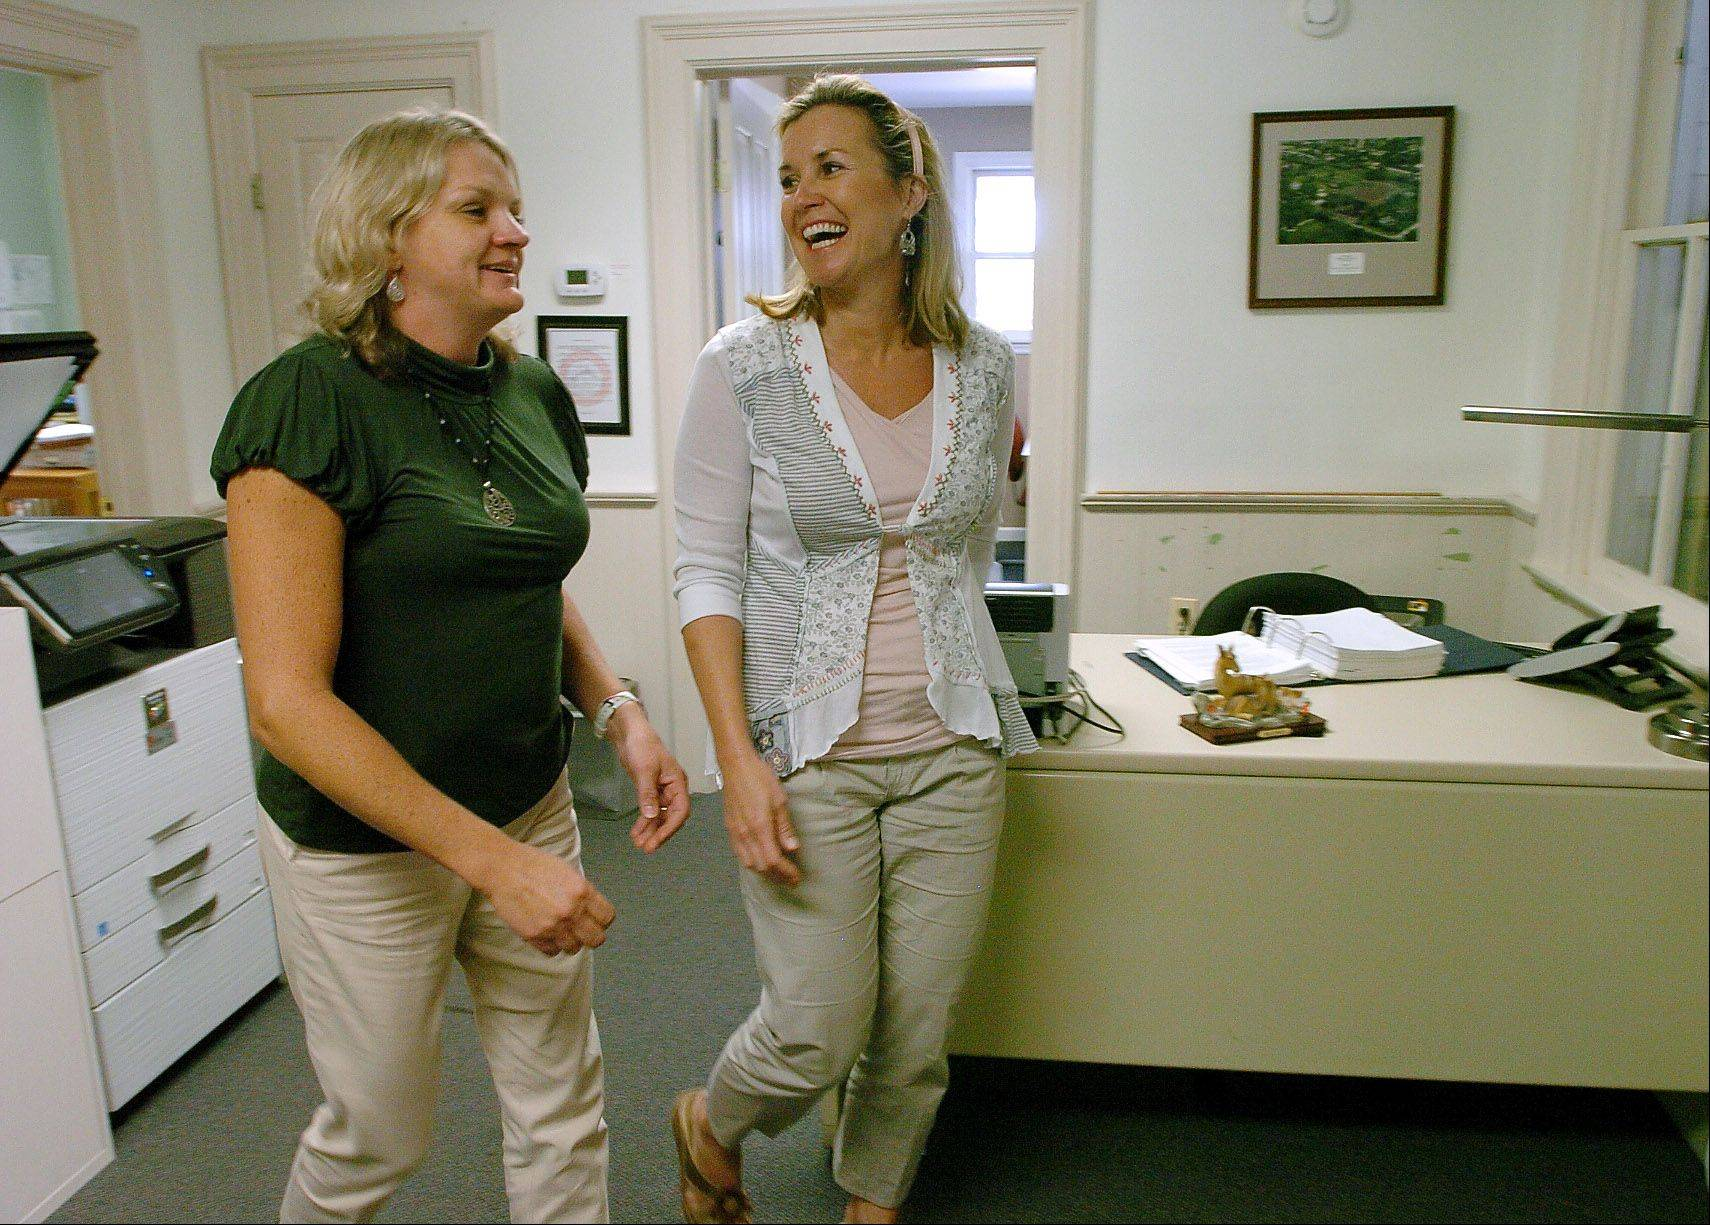 Janet VanZant of Deer Park and Beth McAndrews of Barrington share a laugh while employed at the Village of Deer Park. They found their jobs with the help of CareerPlace in Barrington.